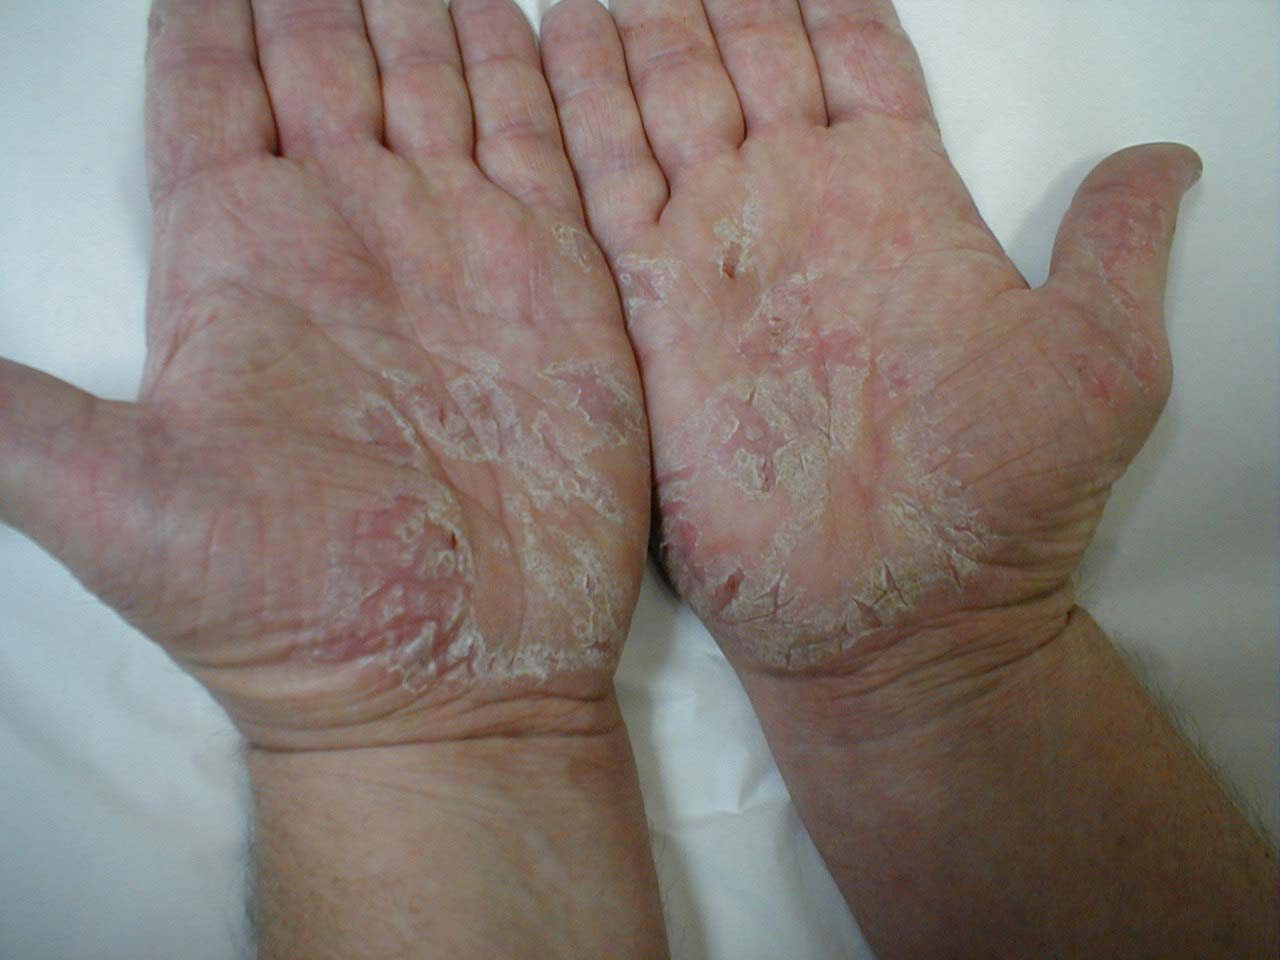 Atopic Dermatitis Photos - Dermatology Education